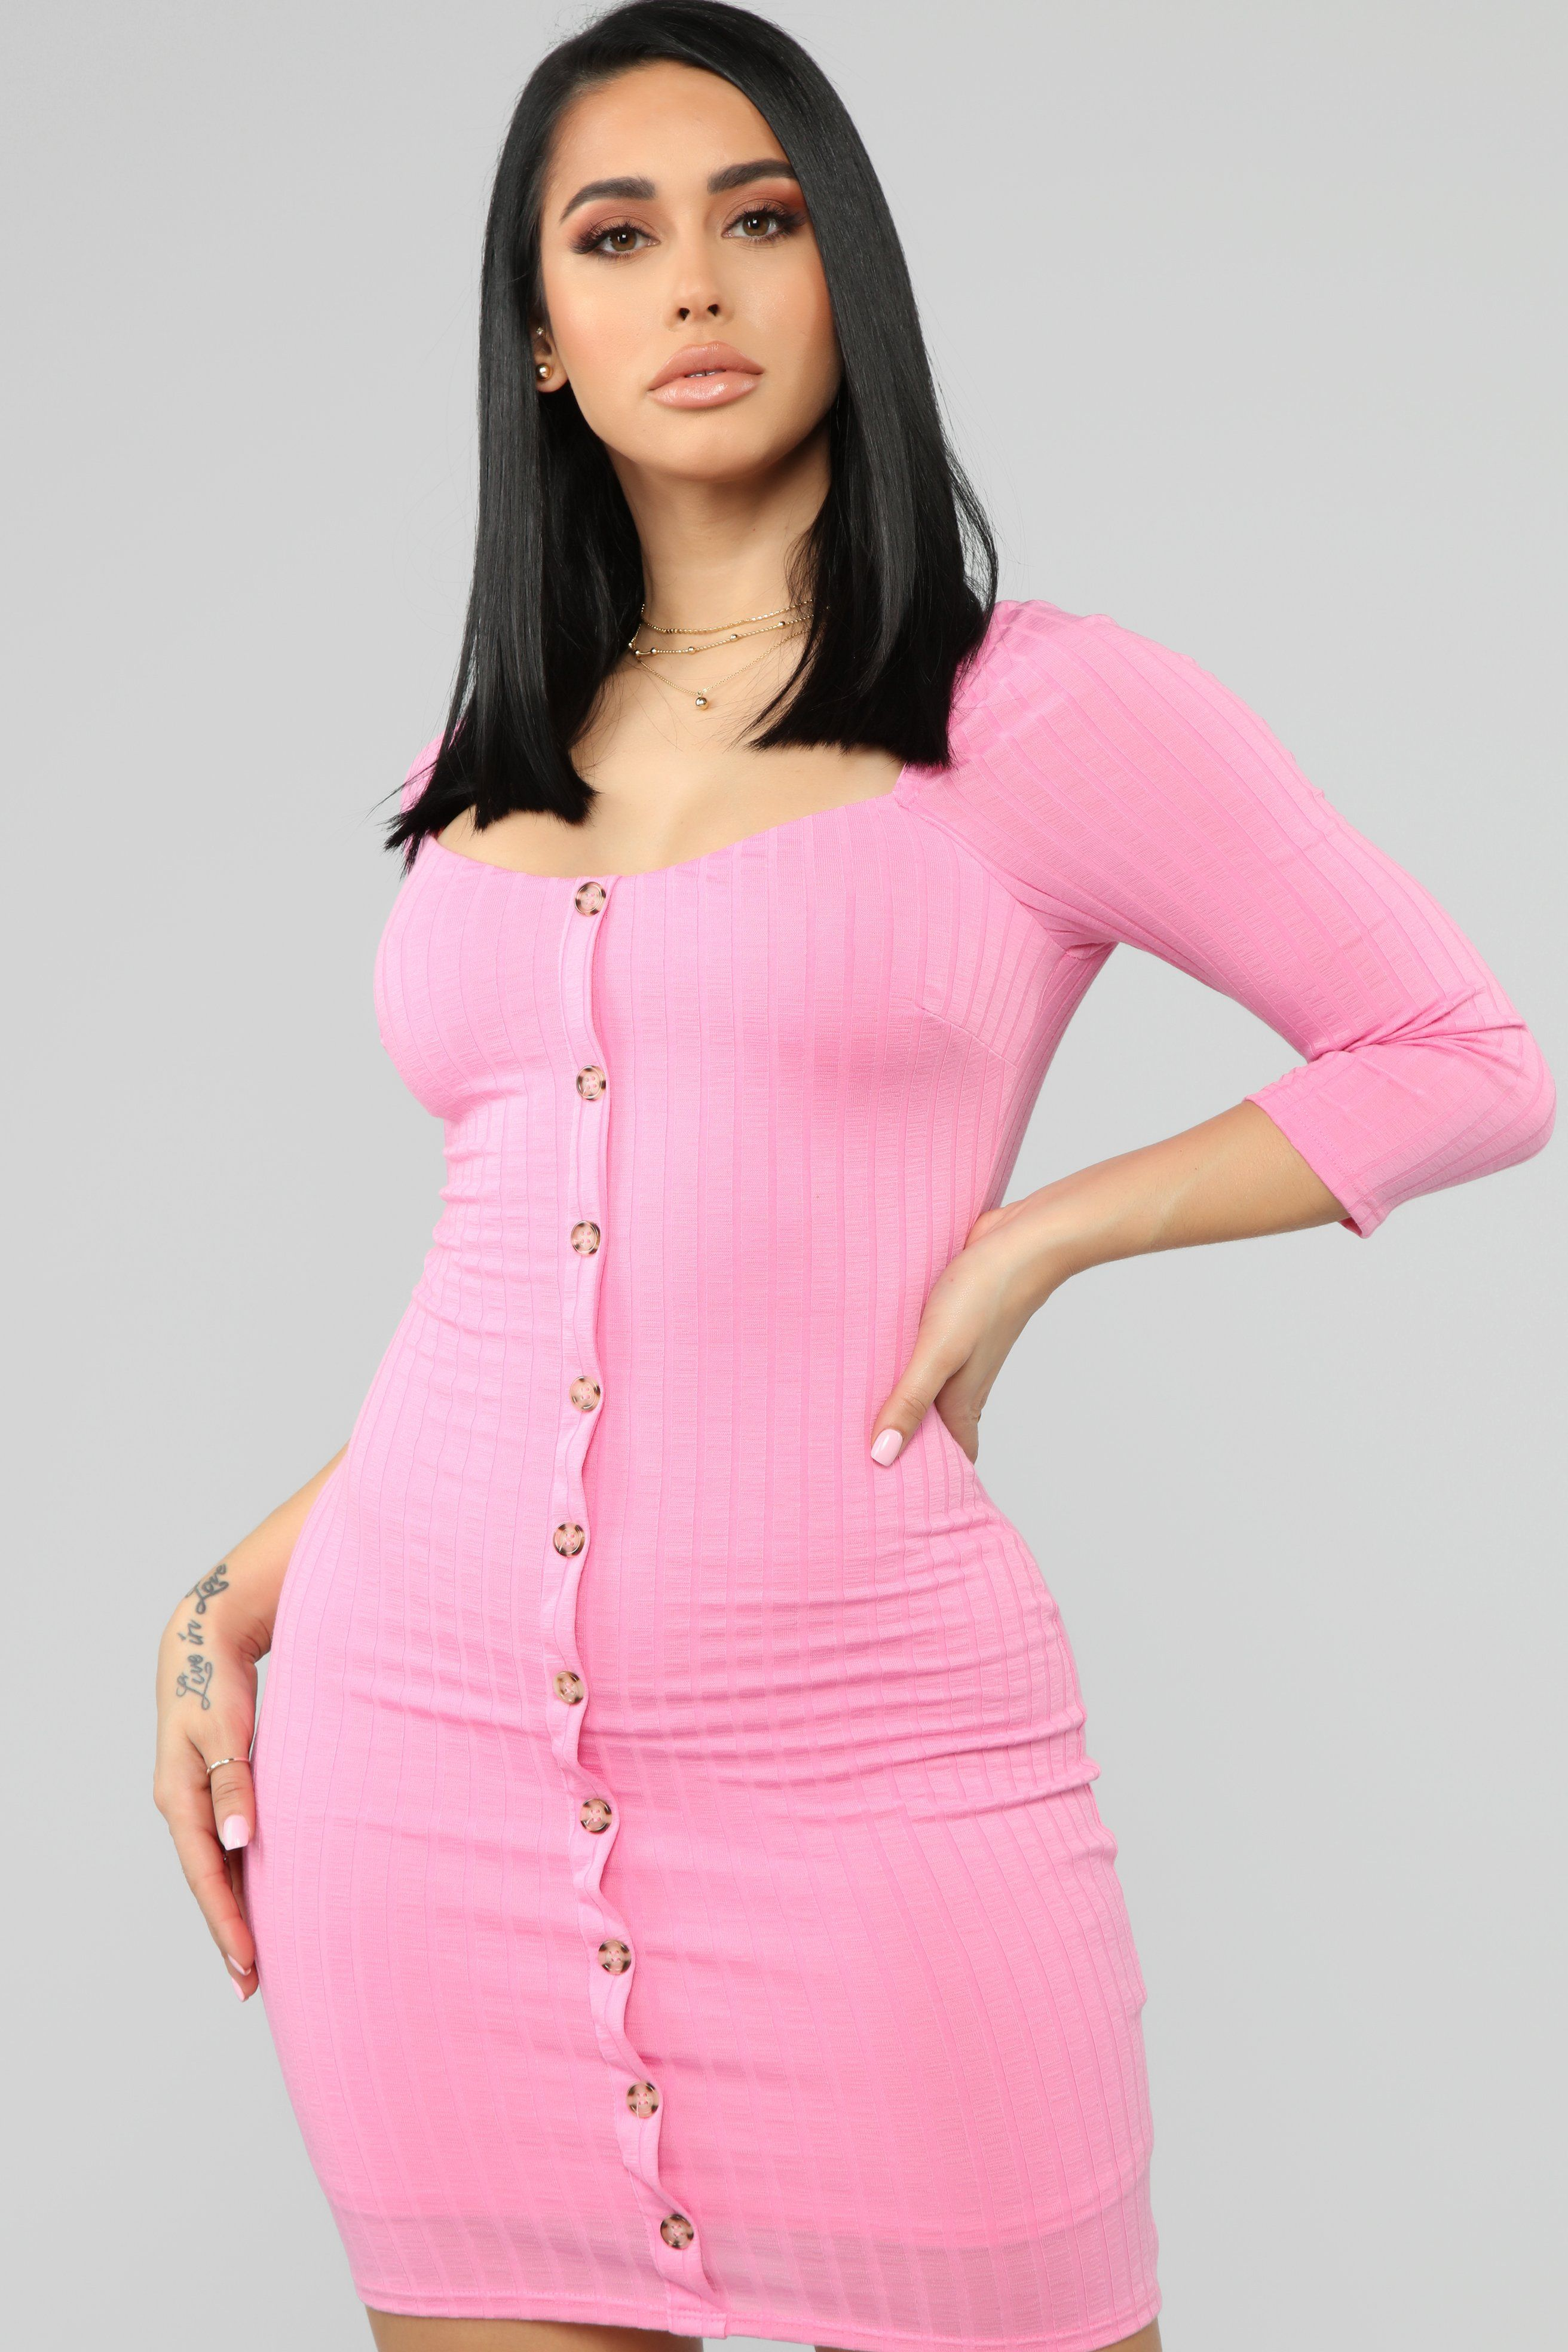 Push A Button Ribbed Mini Dress BubbleGum in 2020 (With